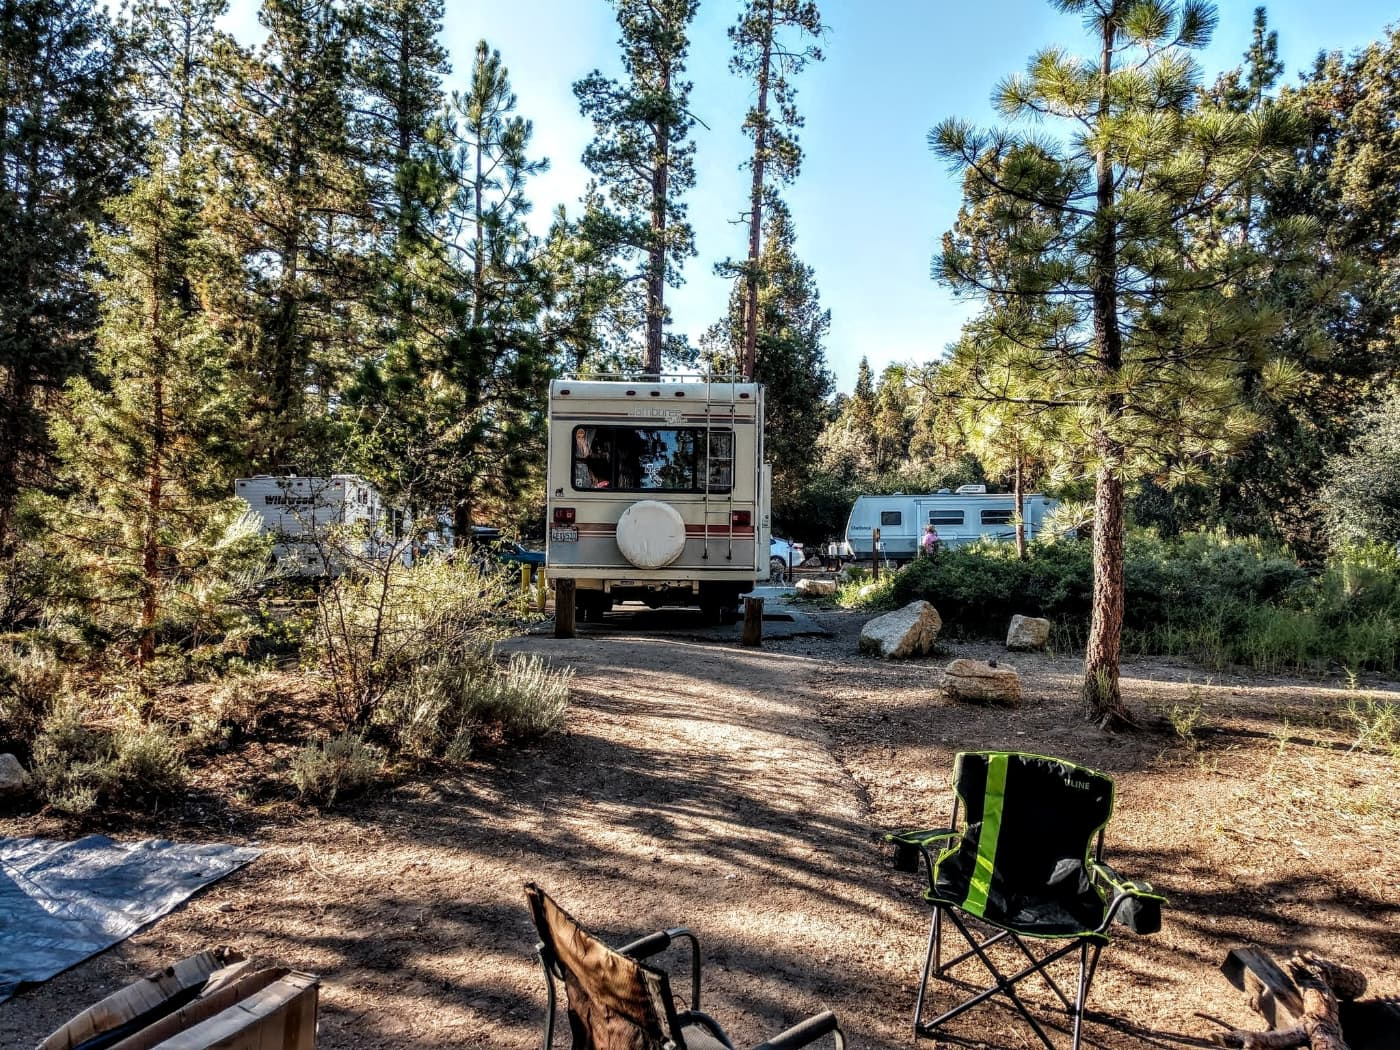 Old School RV from the back parked in a dry bushy area with pine trees and boulders around two other RVs.